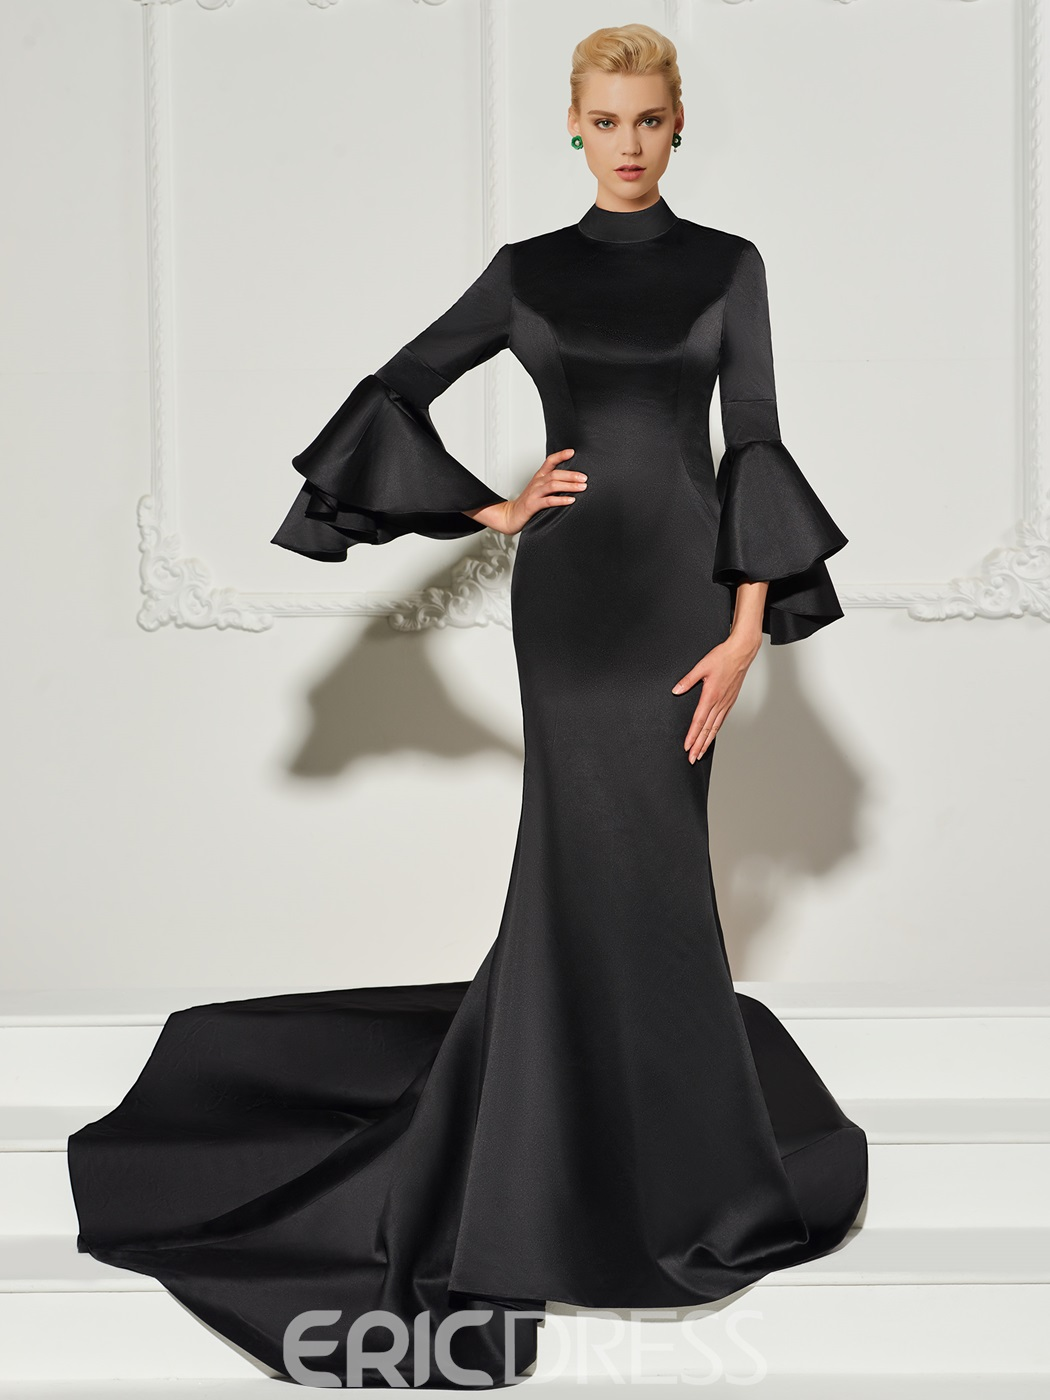 Ericdress Vintage Long Sleeve Mermaid Black Evening Dress 13128654 ...